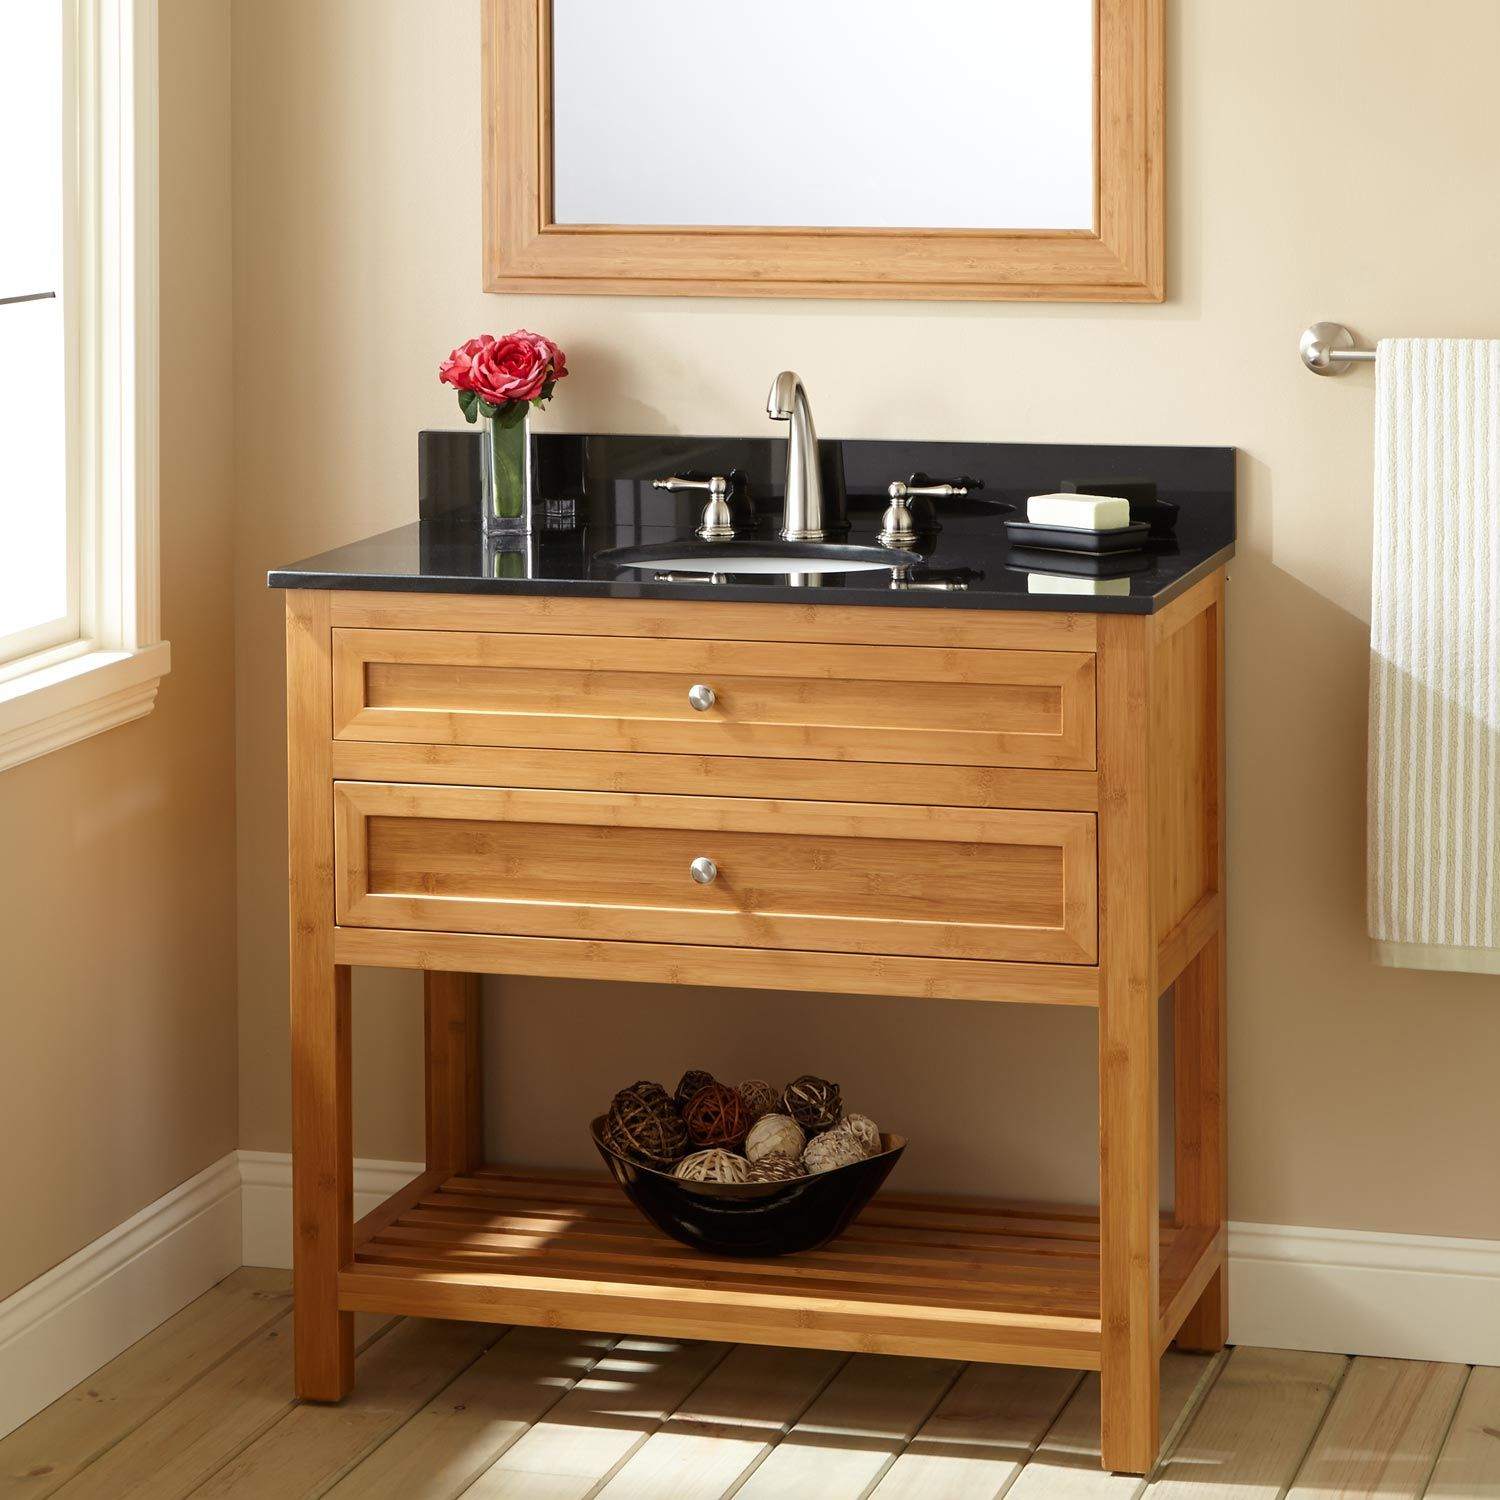 "30"" Narrow Depth Miles Bamboo Vanity for Undermount Sink"